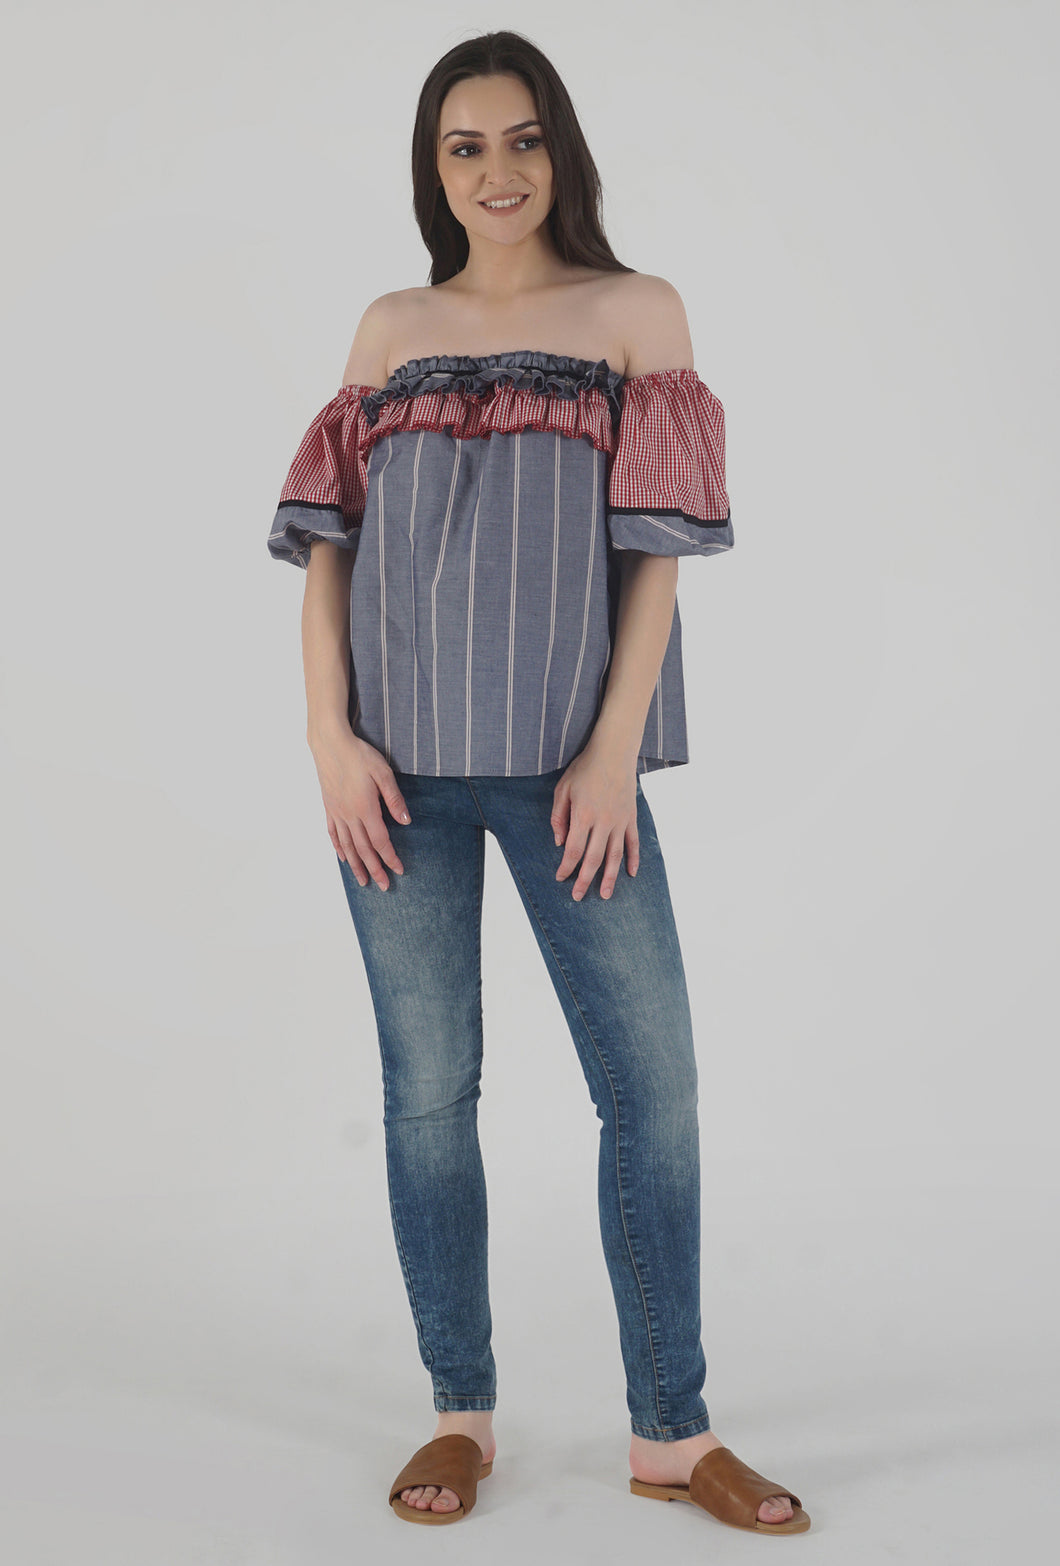 Grey Stripe Lantern Sleeve Frilled Off Shoulder Top style